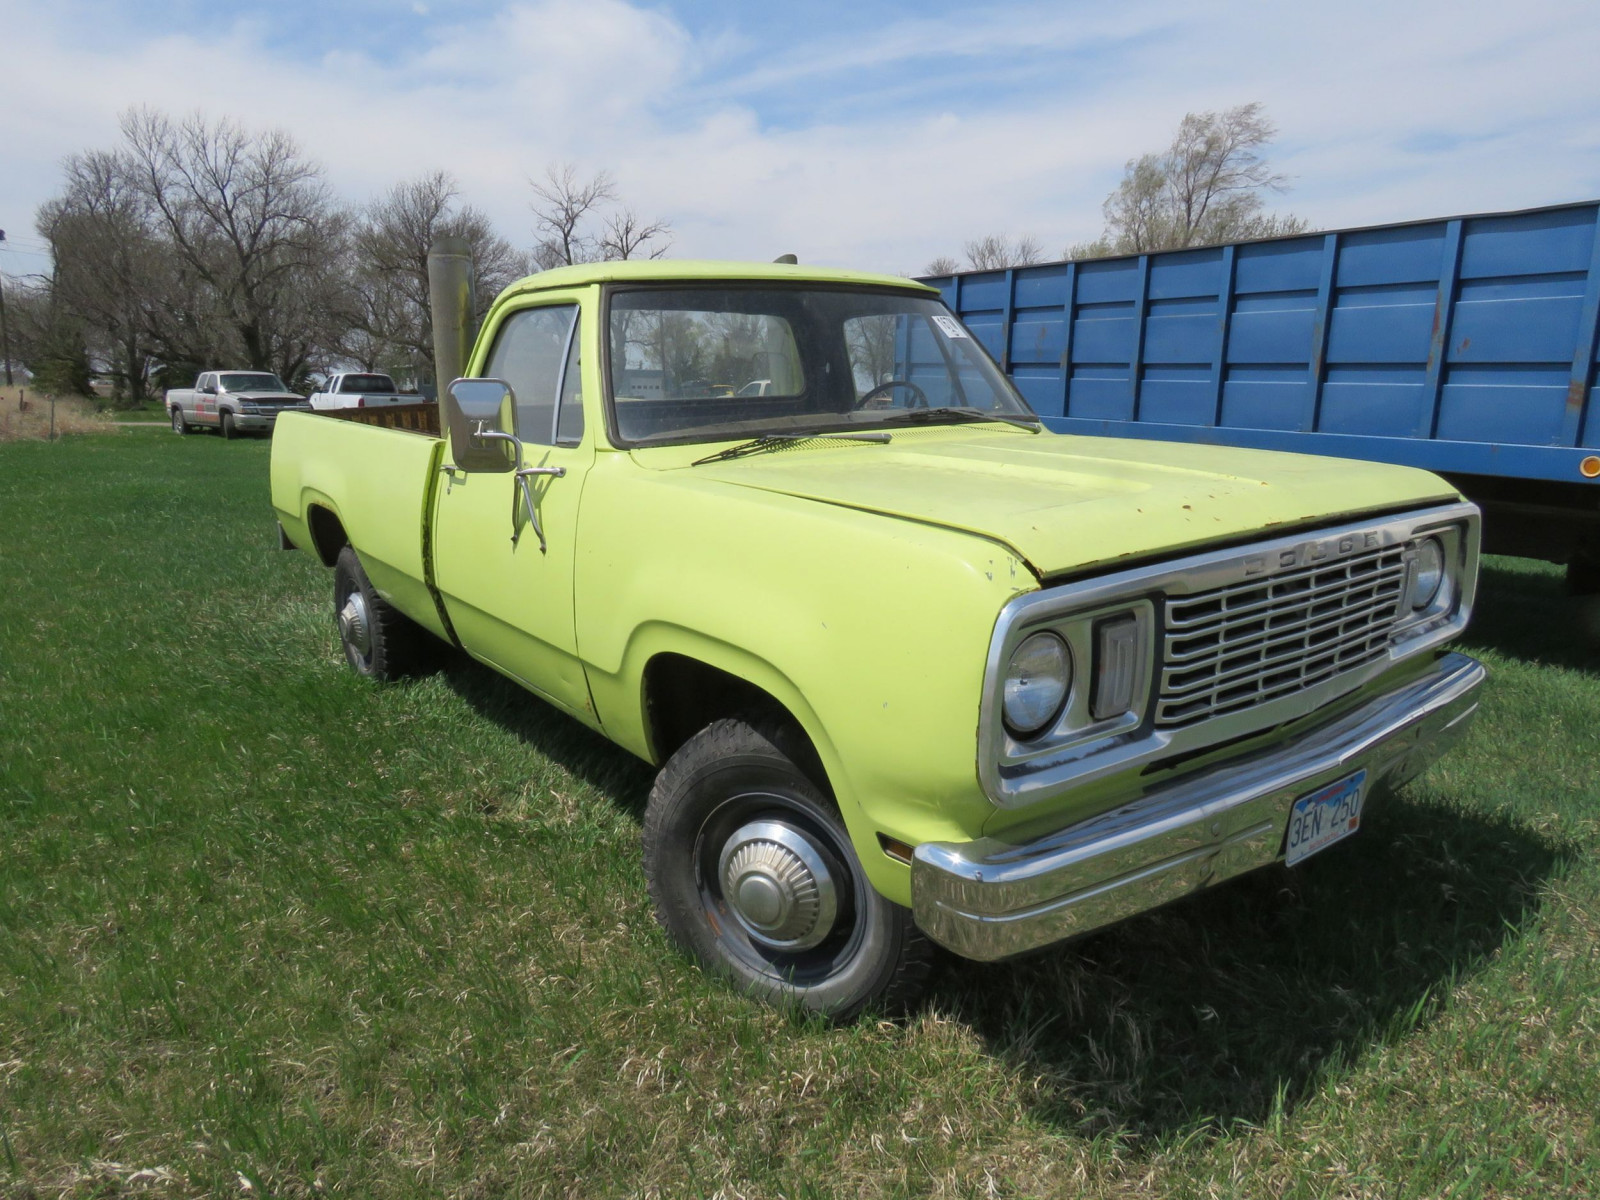 1977 Dodge Power Wagon - Image 1